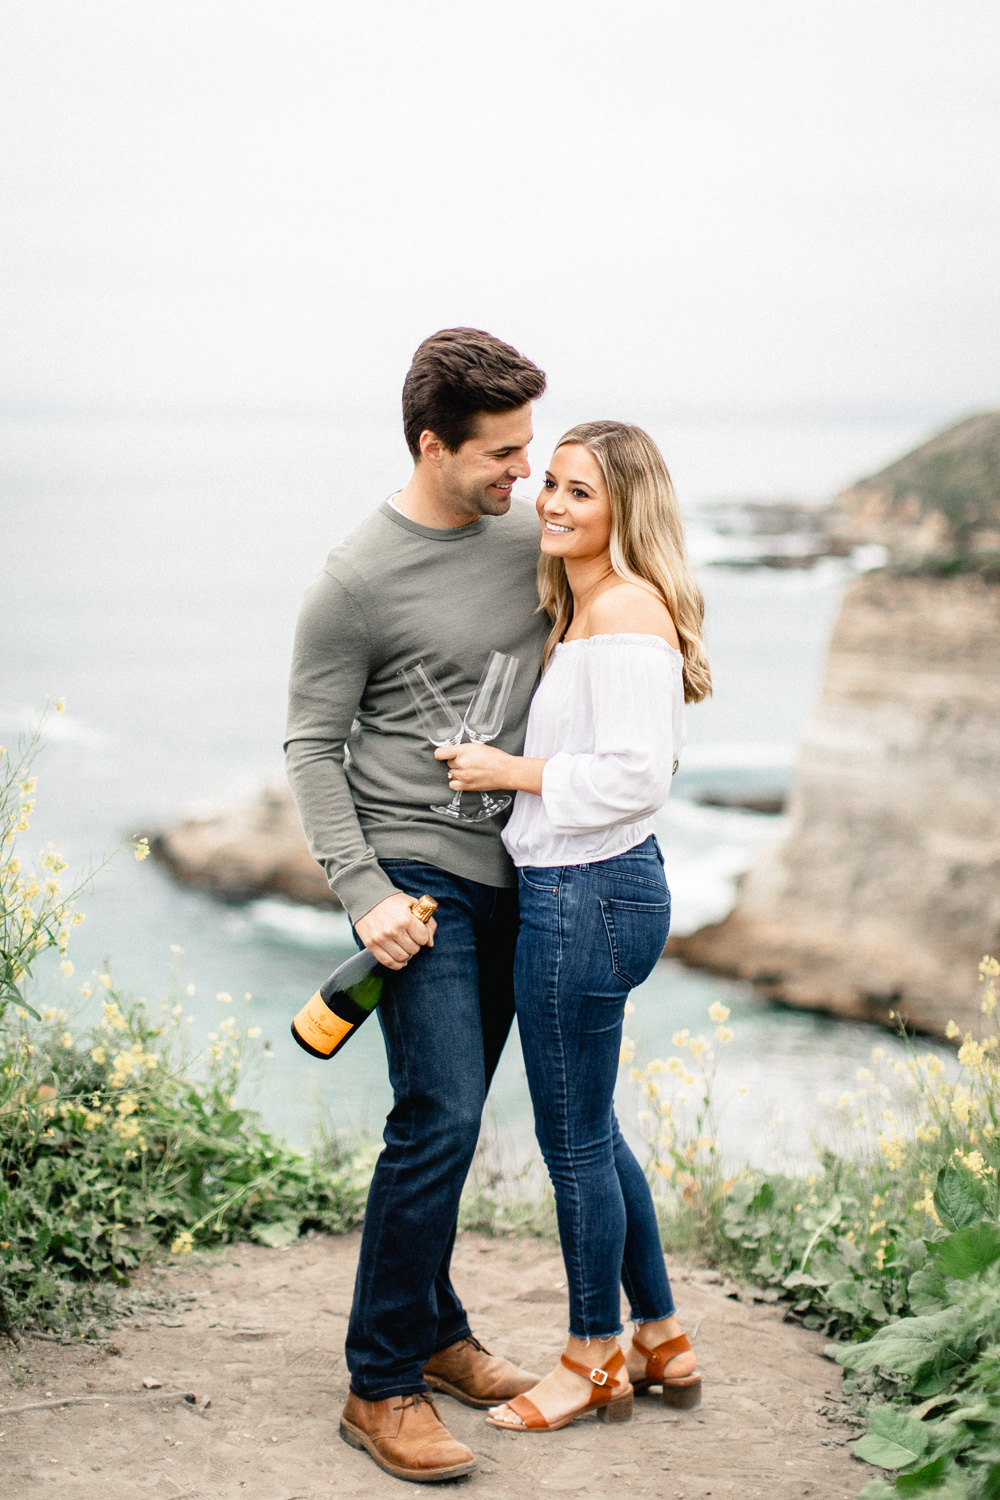 Ashley-Rae-Studio-San-Luis-Obispo-Engagement-Session-Santa-Barbara-Wedding-Photographer-191.jpg